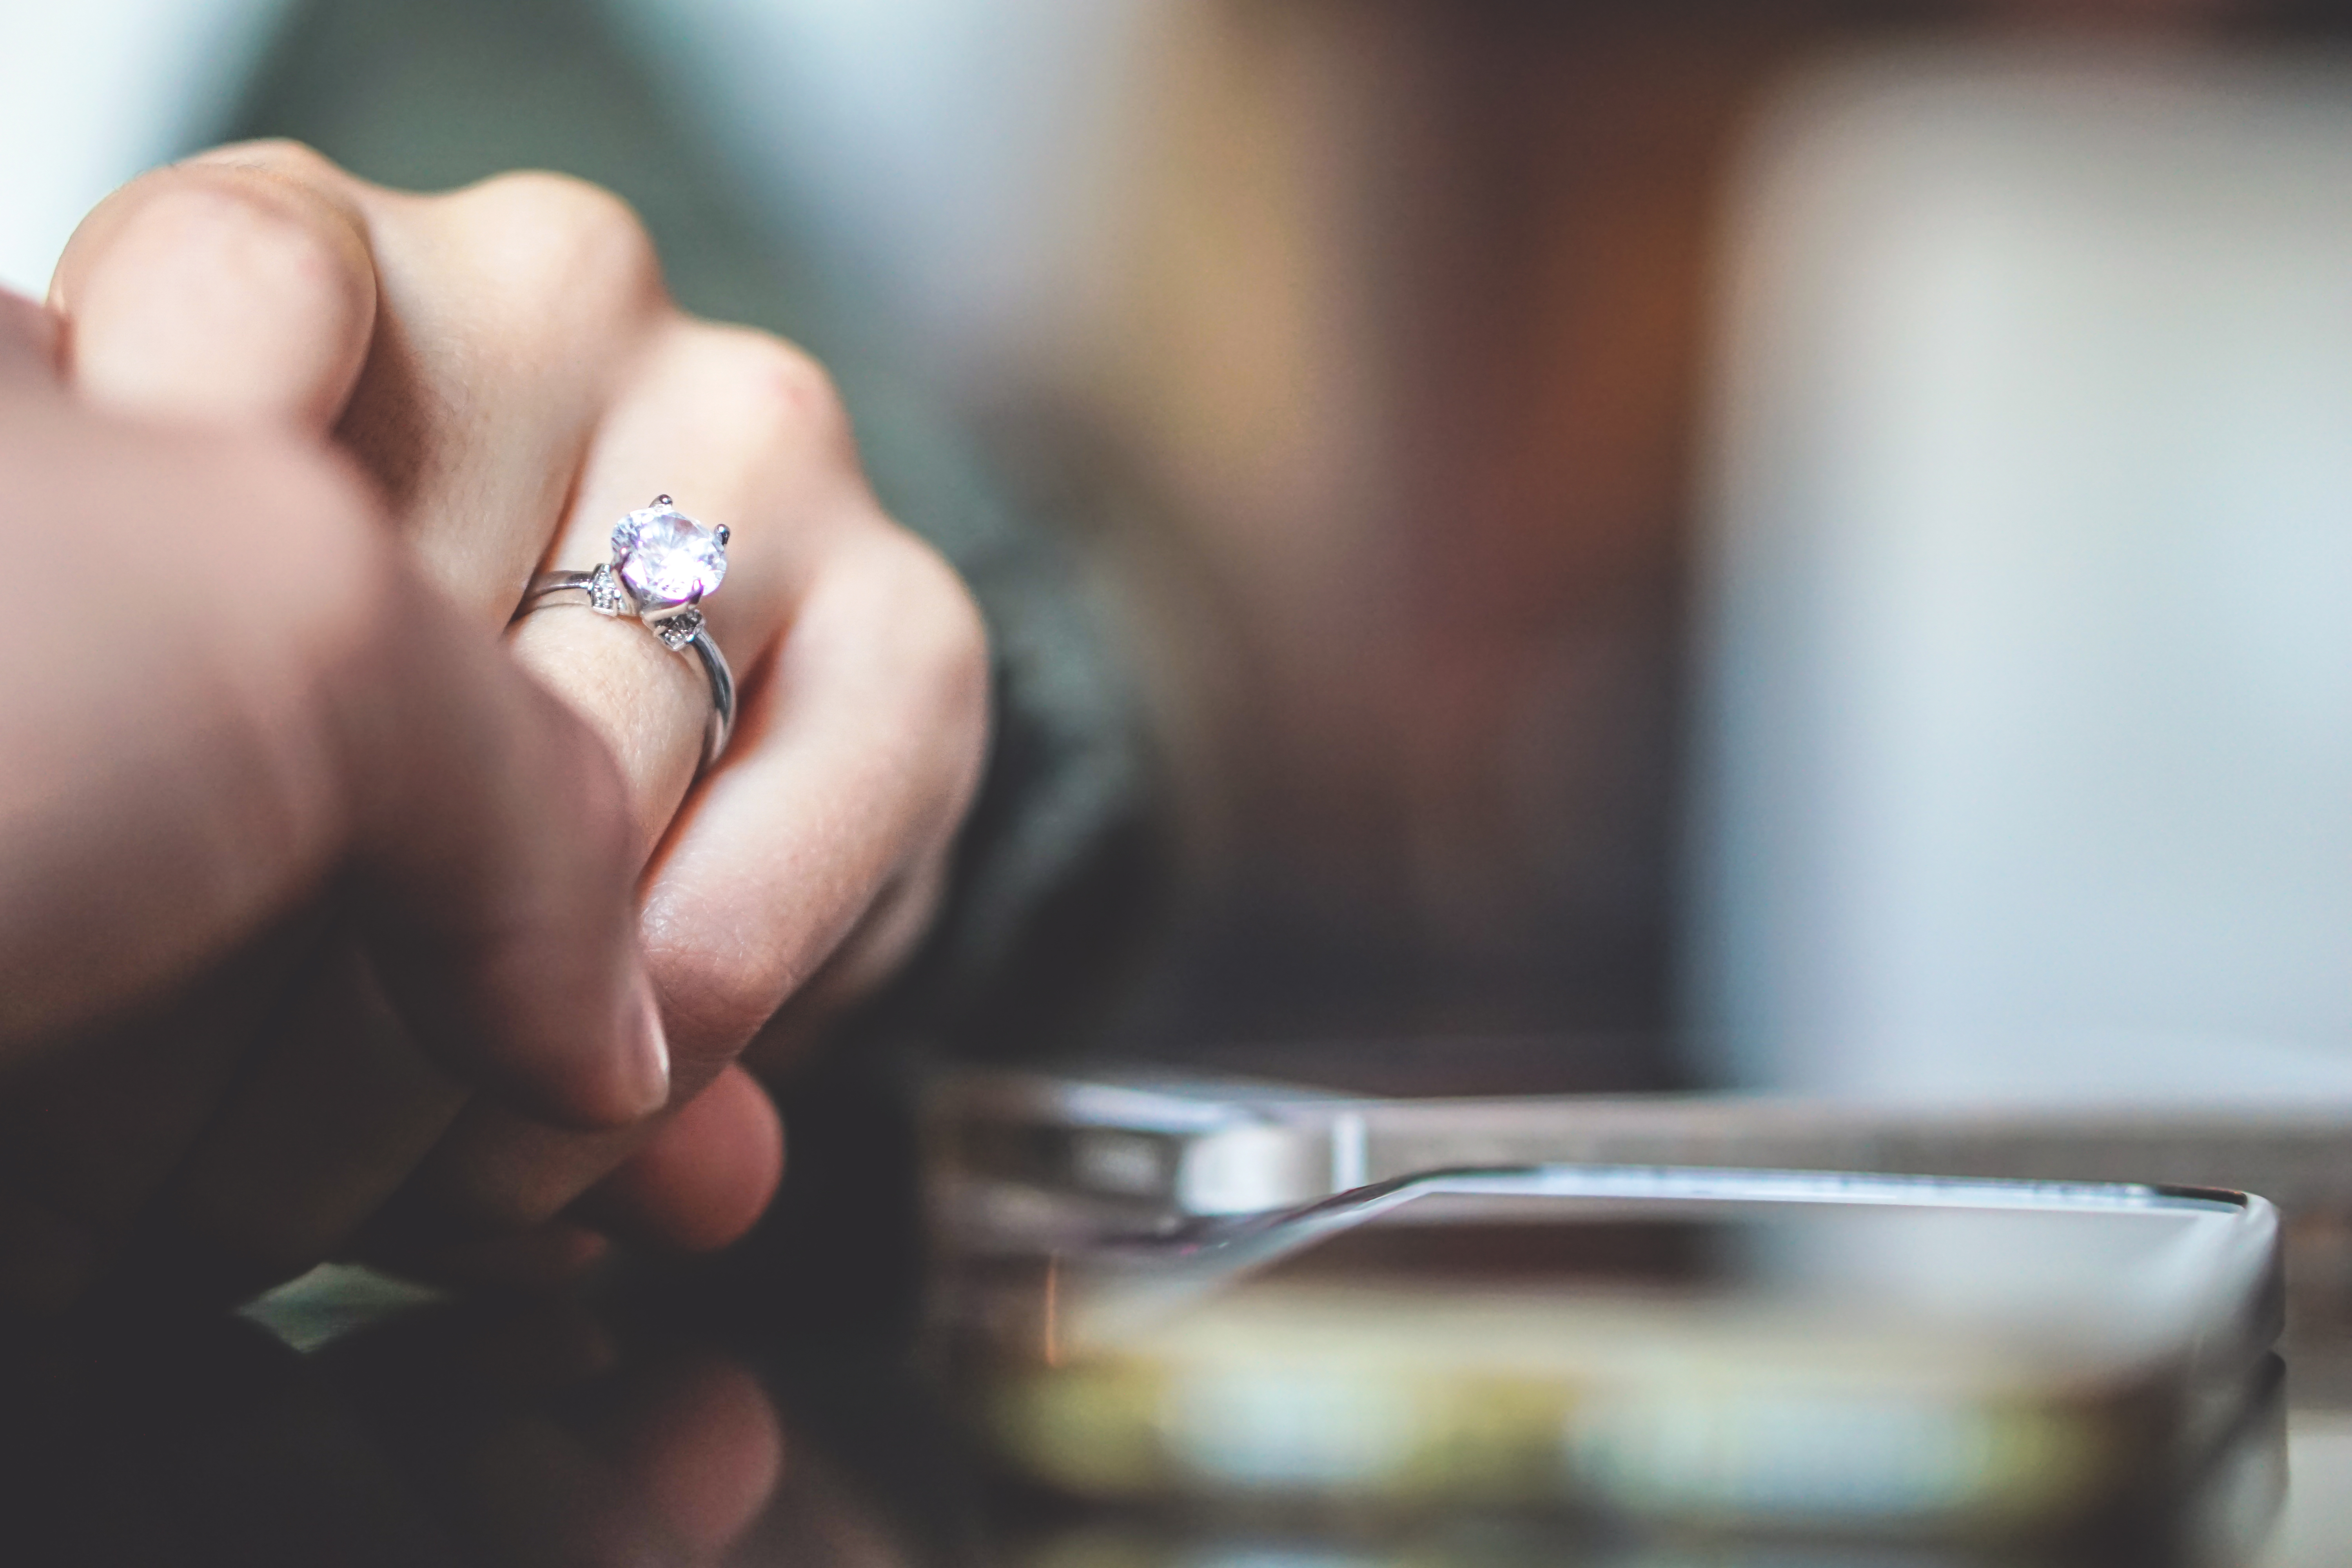 Diamond Hedge Uses AR In Engagement Ring Retail | PYMNTS.com